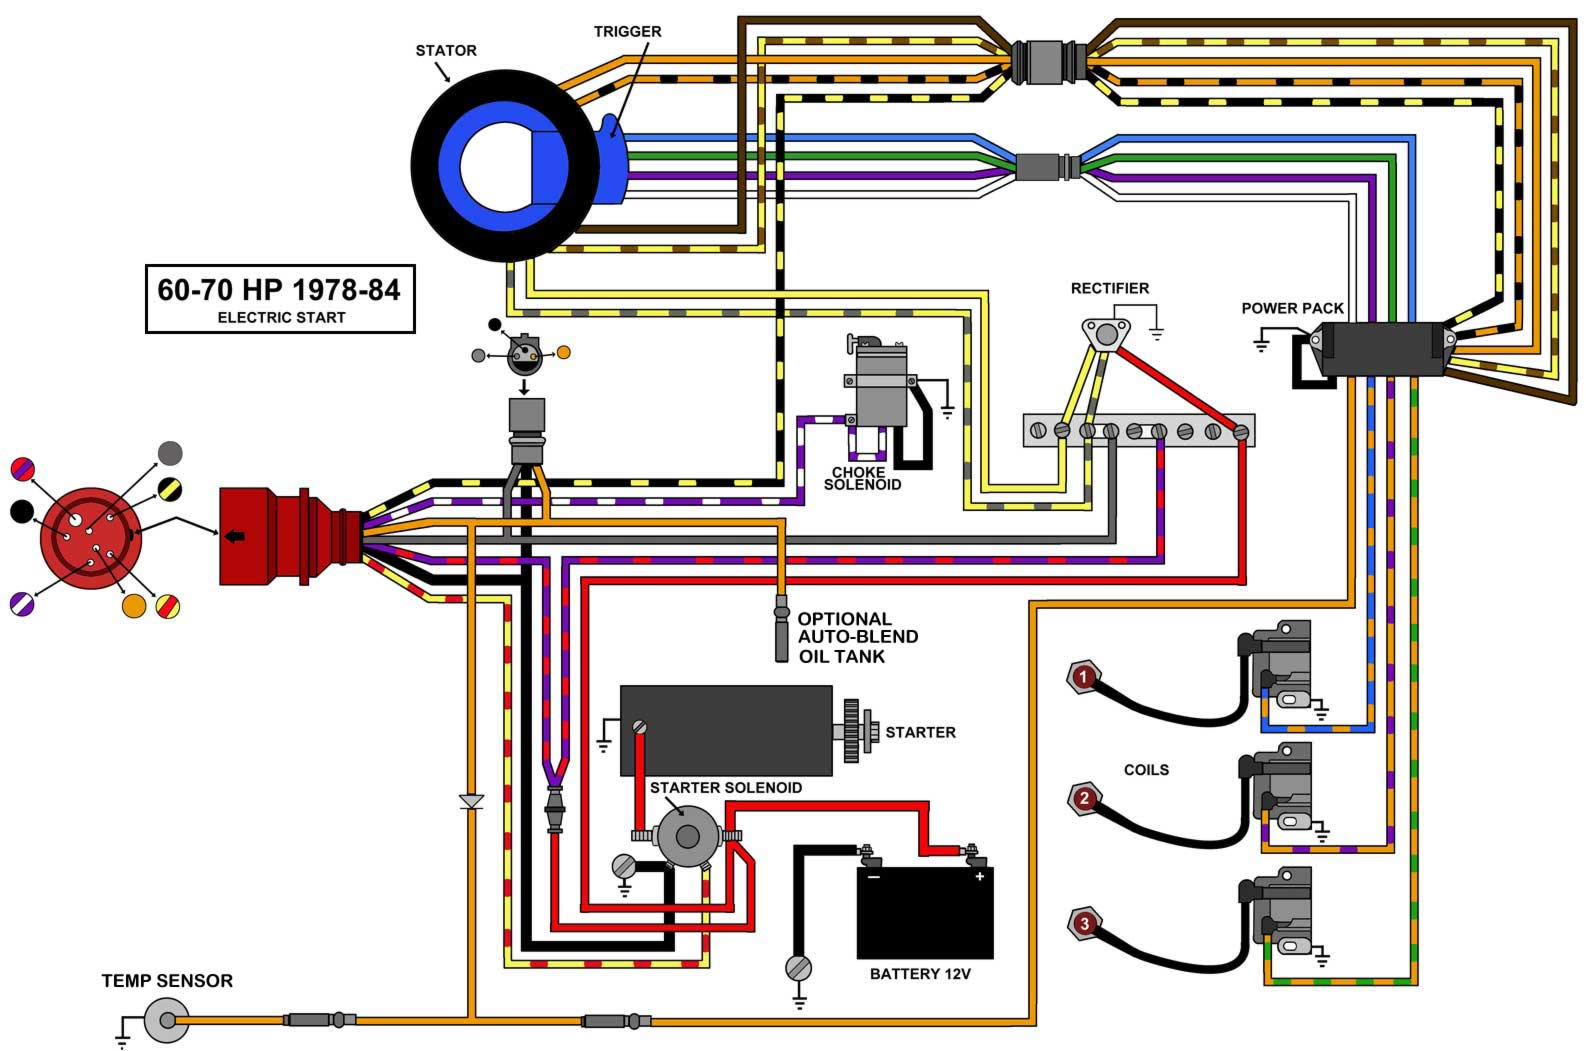 78 84_3 CYL_EL wiring tach from johnson controls page 1 iboats boating forums 70 HP Evinrude Schematic at cos-gaming.co